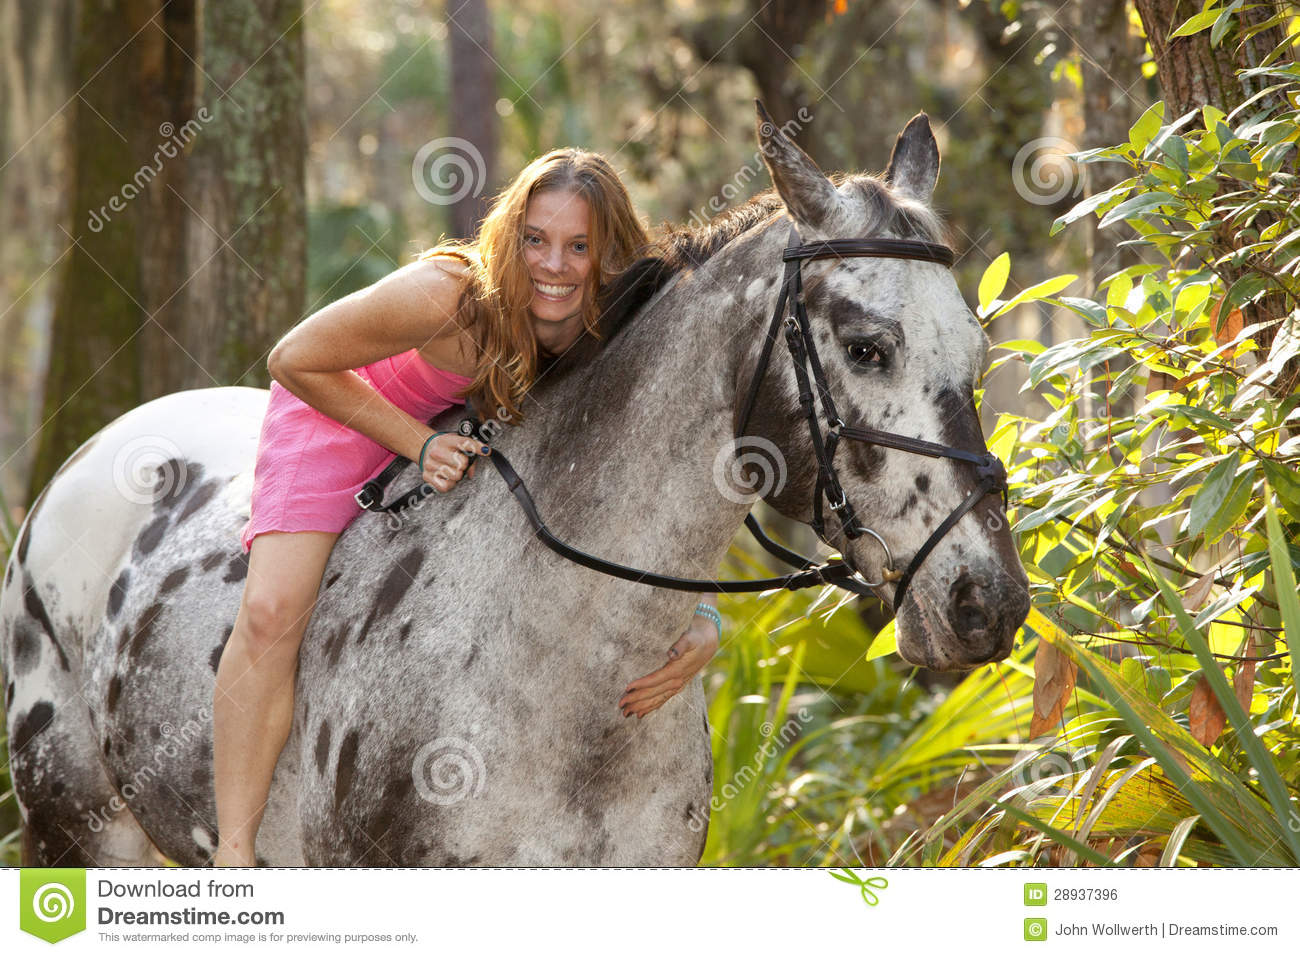 Modern Girl Wallpaper Free Download Woman In Forest Lying On Horse Stock Photo Image Of Ride